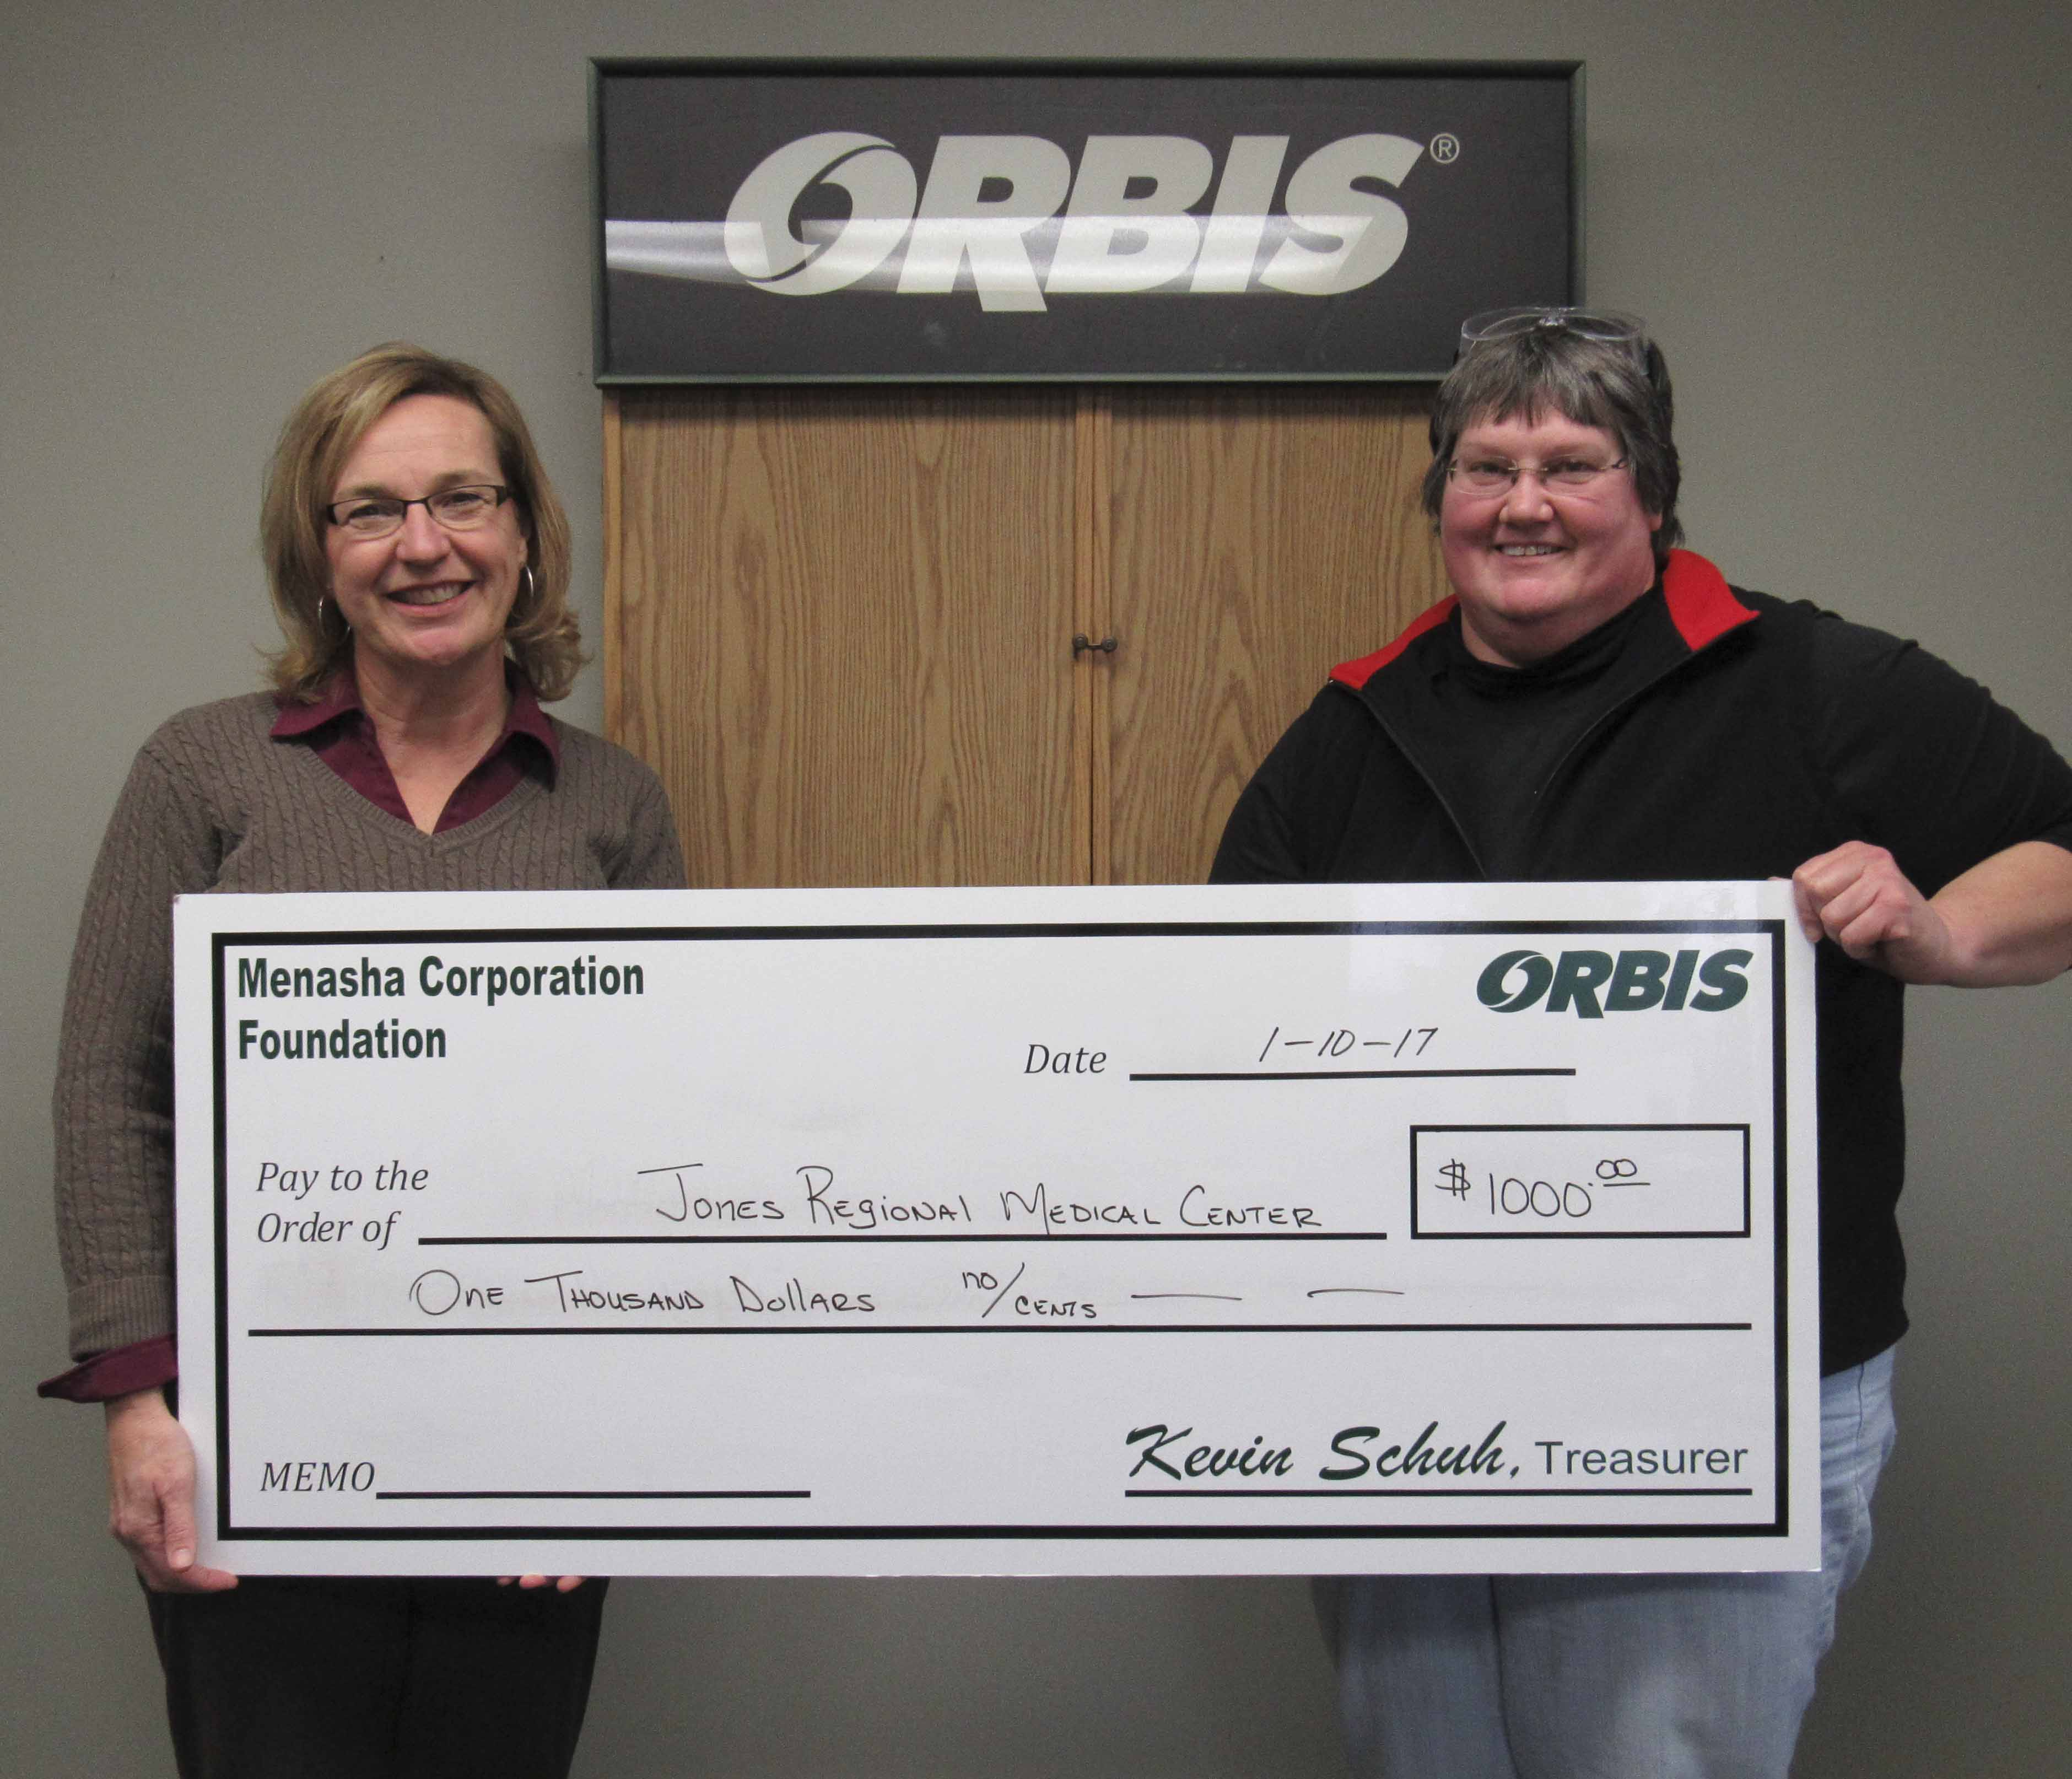 Sheila Tjaden (left) with Jones Regional Medical Center accepts a donation for $1,000 from Cheri Tholen with Orbis.